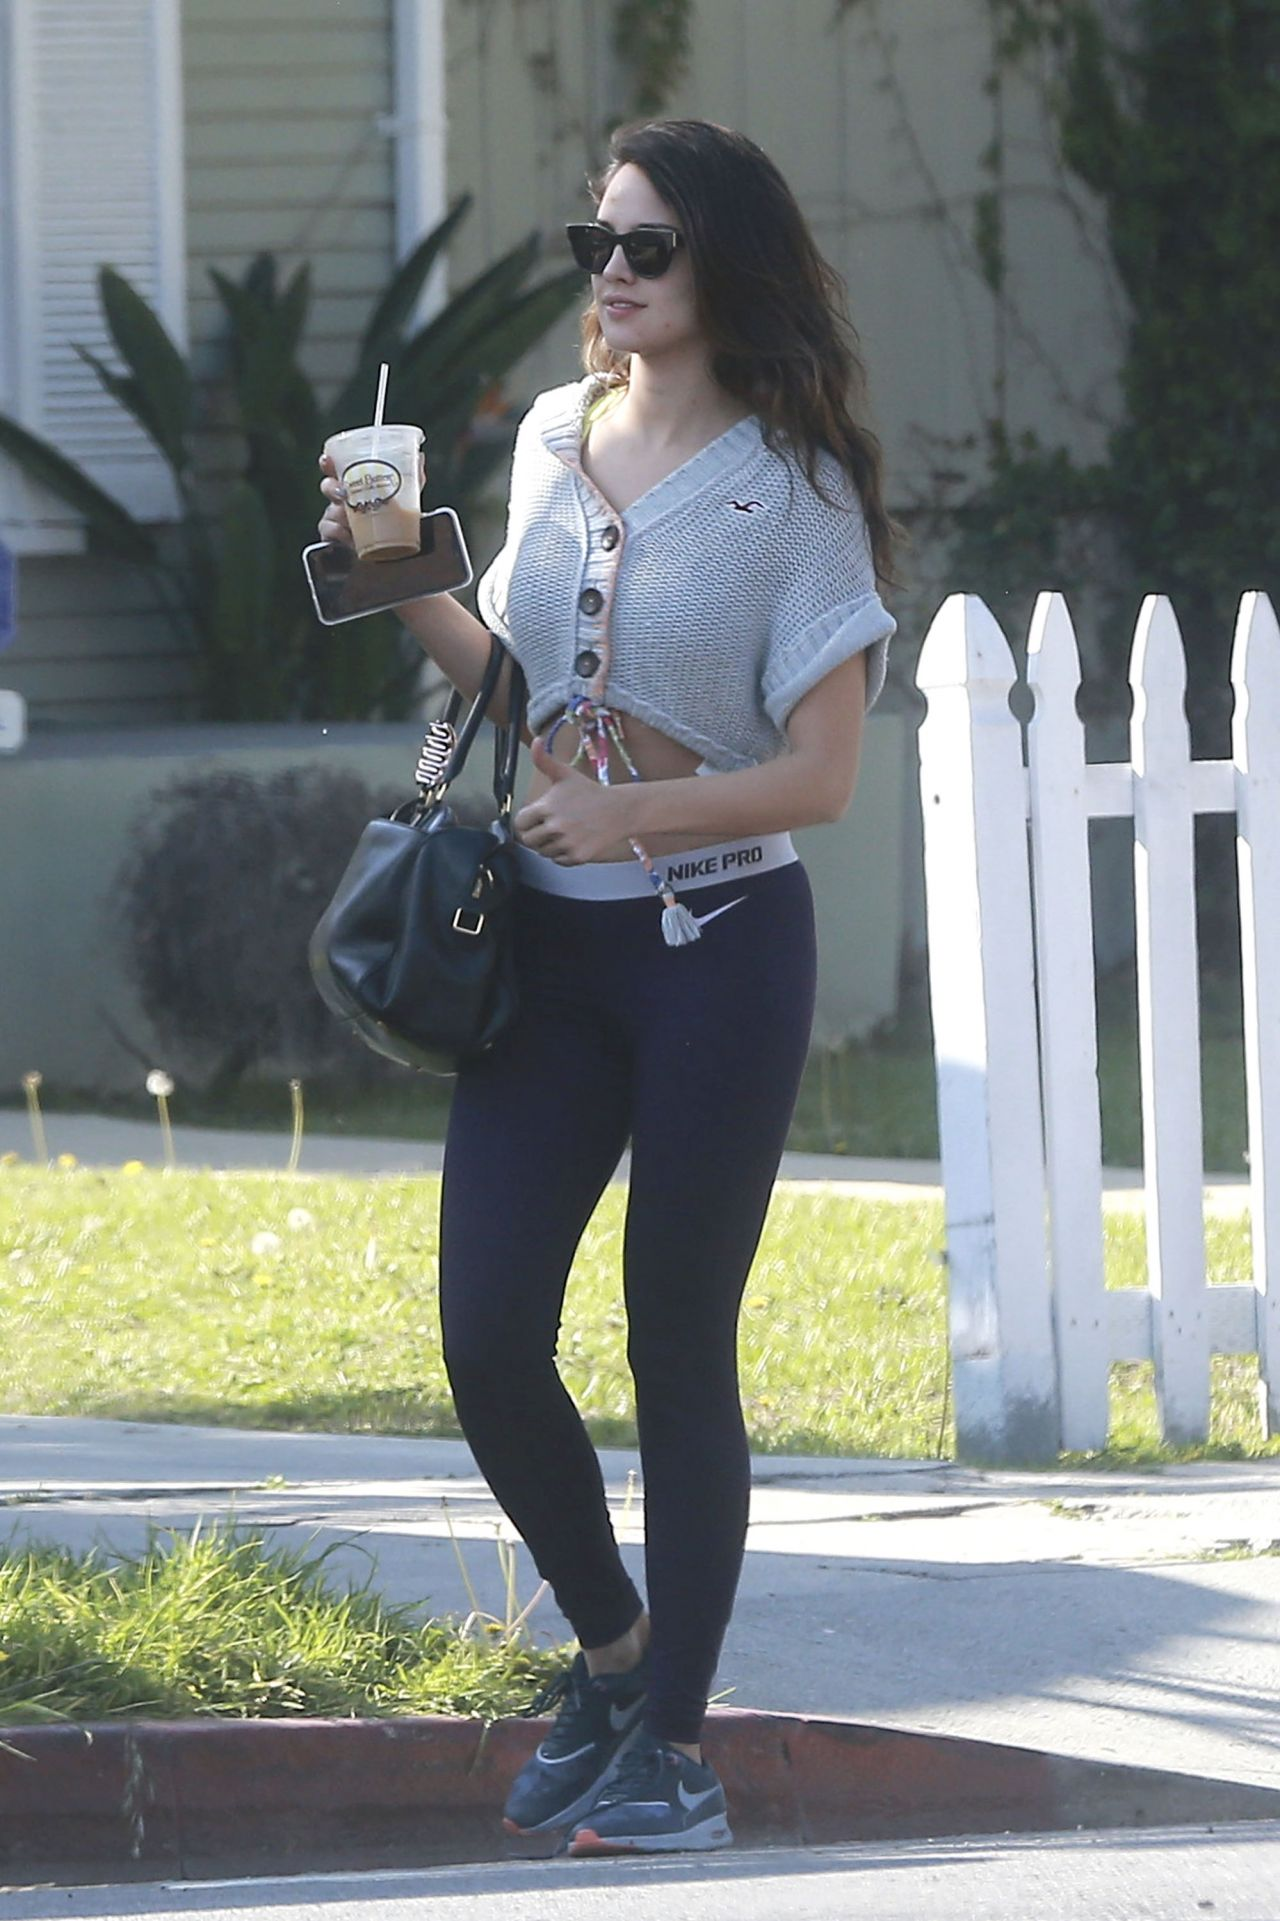 Eiza gonzalez in tights at cafe gratitude in los angeles naked (23 photo), Twitter Celebrity pic